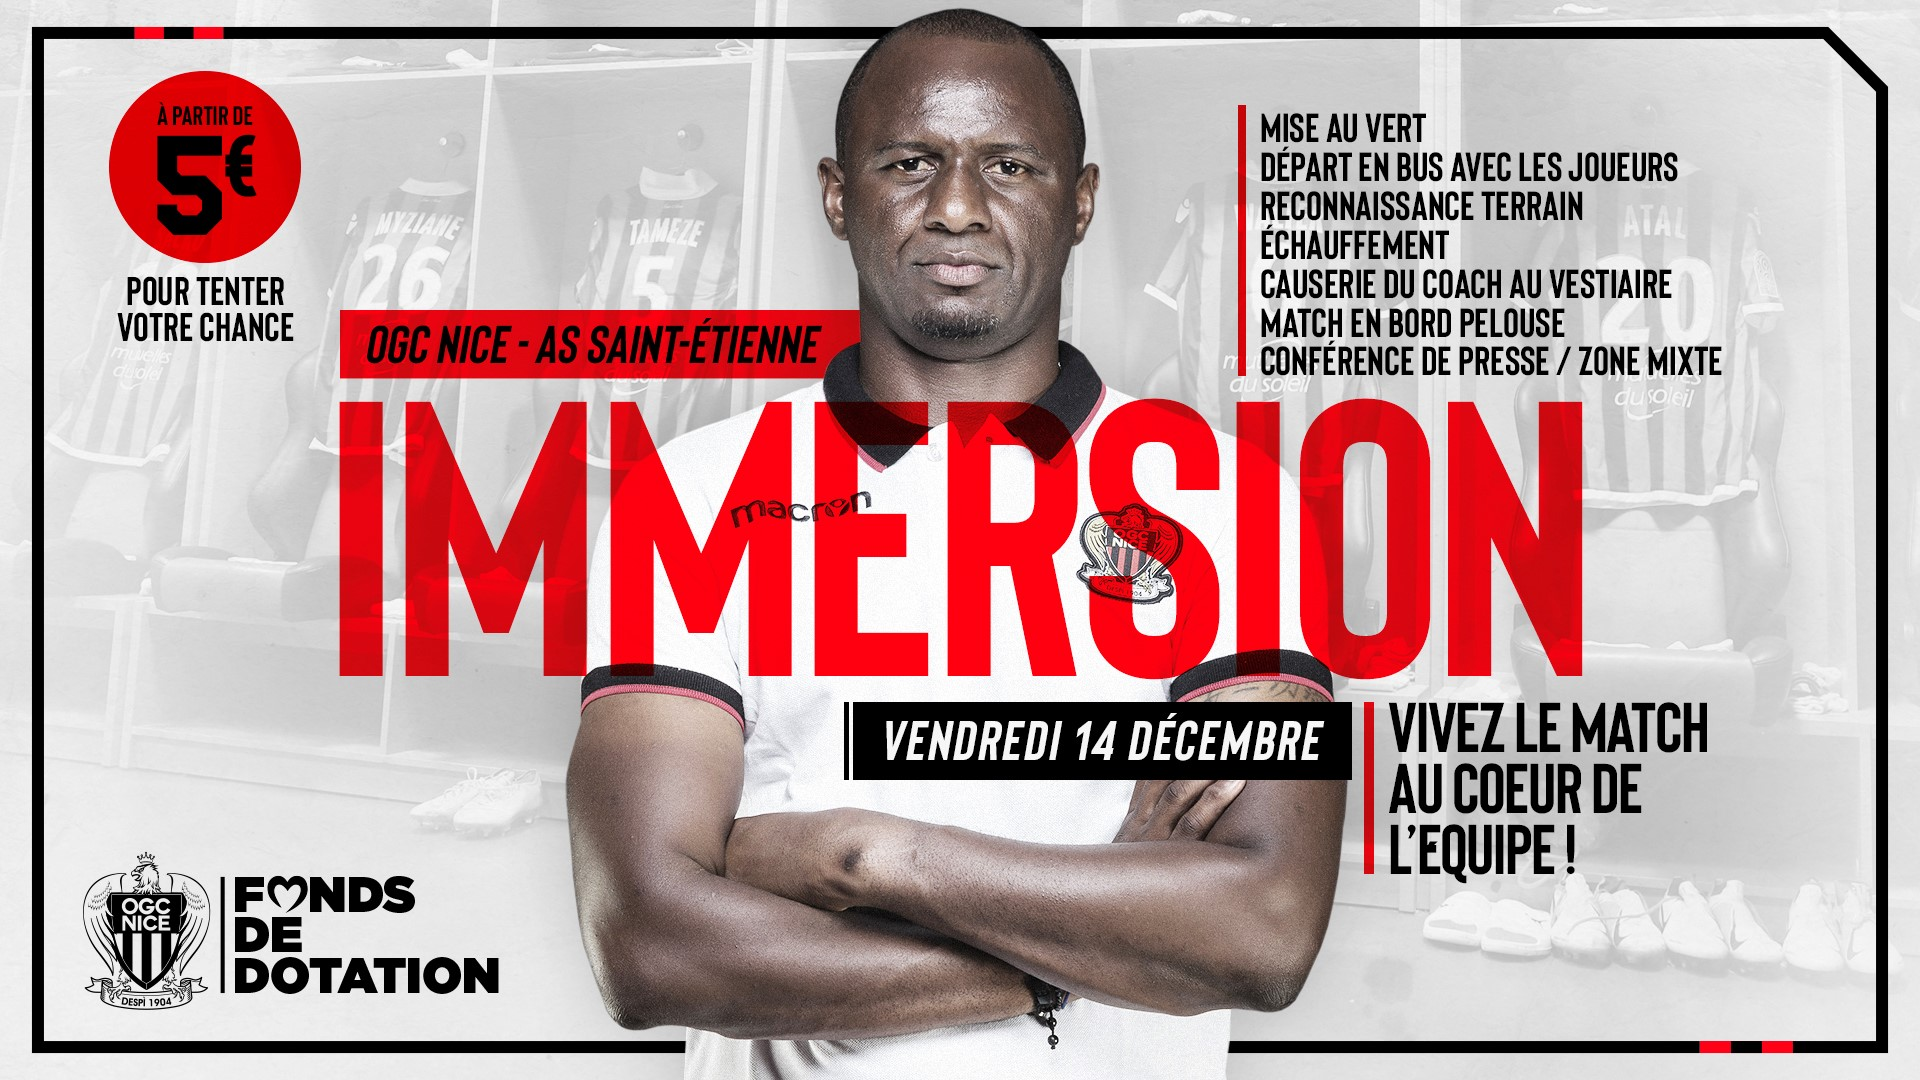 Immersion OGC Nice